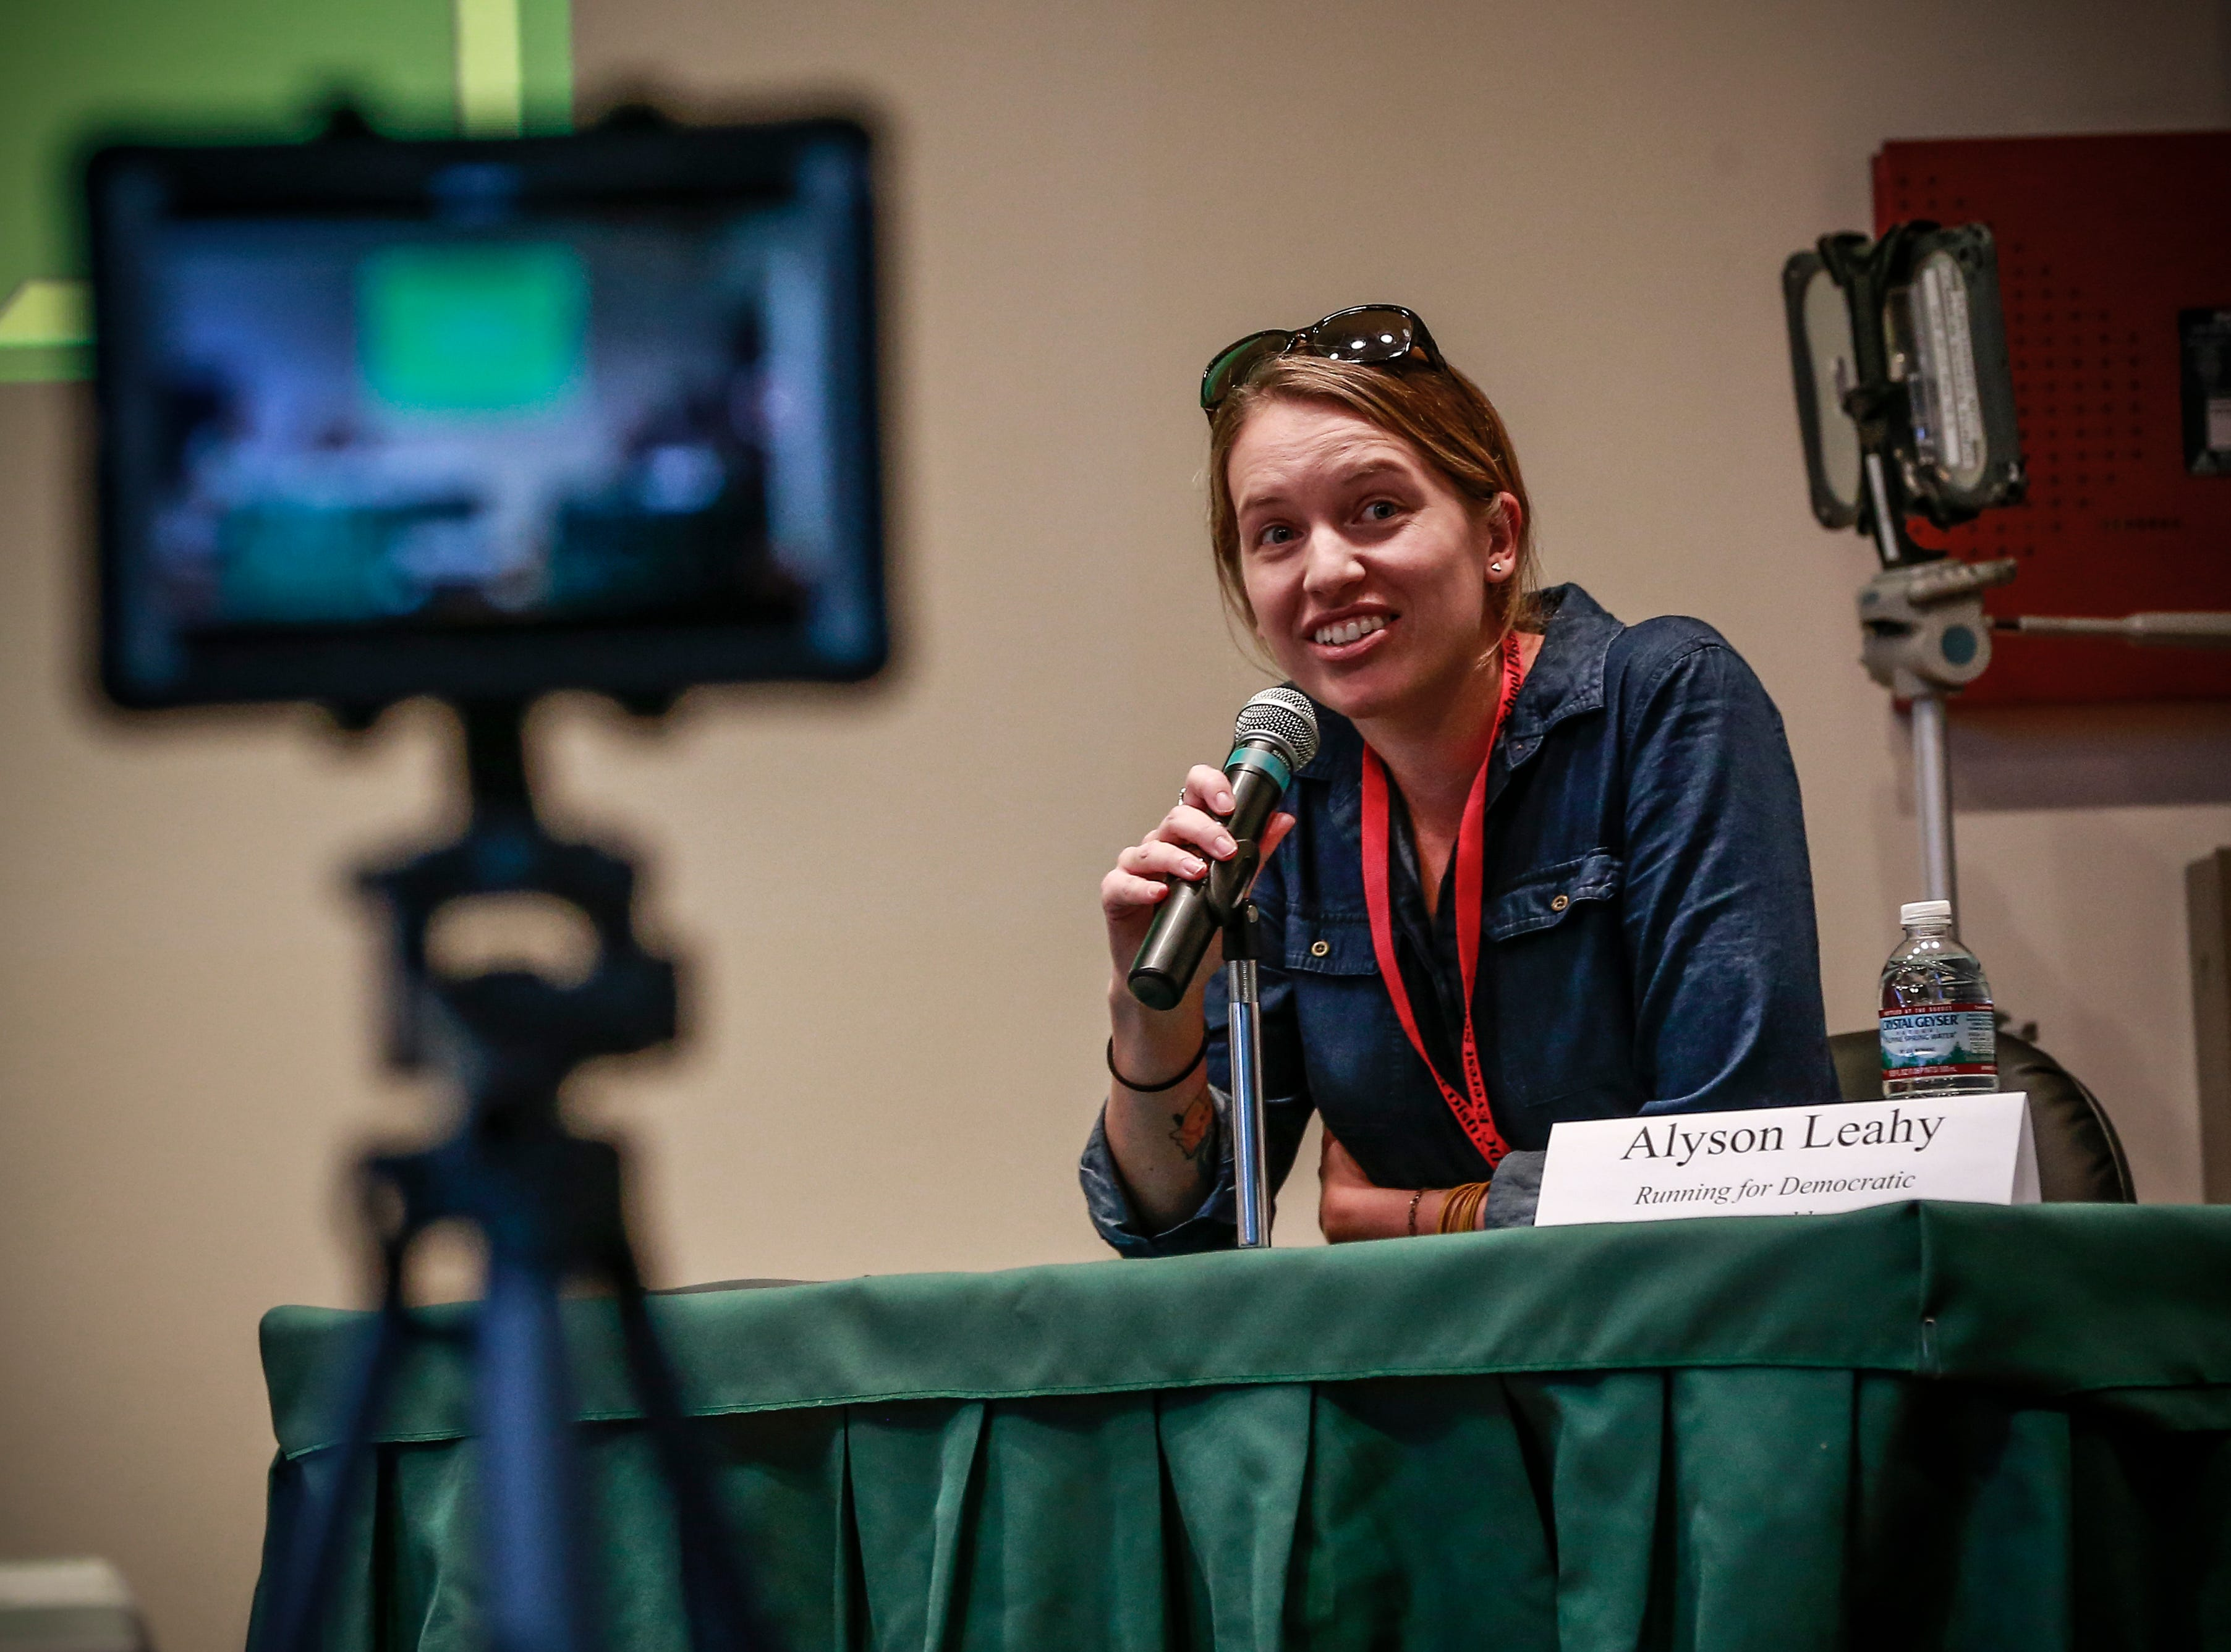 Running Democratic for State Assembly-District 85th Alyson Leahy makes an introduction during the 9th grade Action Civics Political Forum Wednesday, Oct. 17, 2018, at D.C. Everest Junior High School auditorium in Weston, Wis. T'xer Zhon Kha/USA TODAY NETWORK-Wisconsin